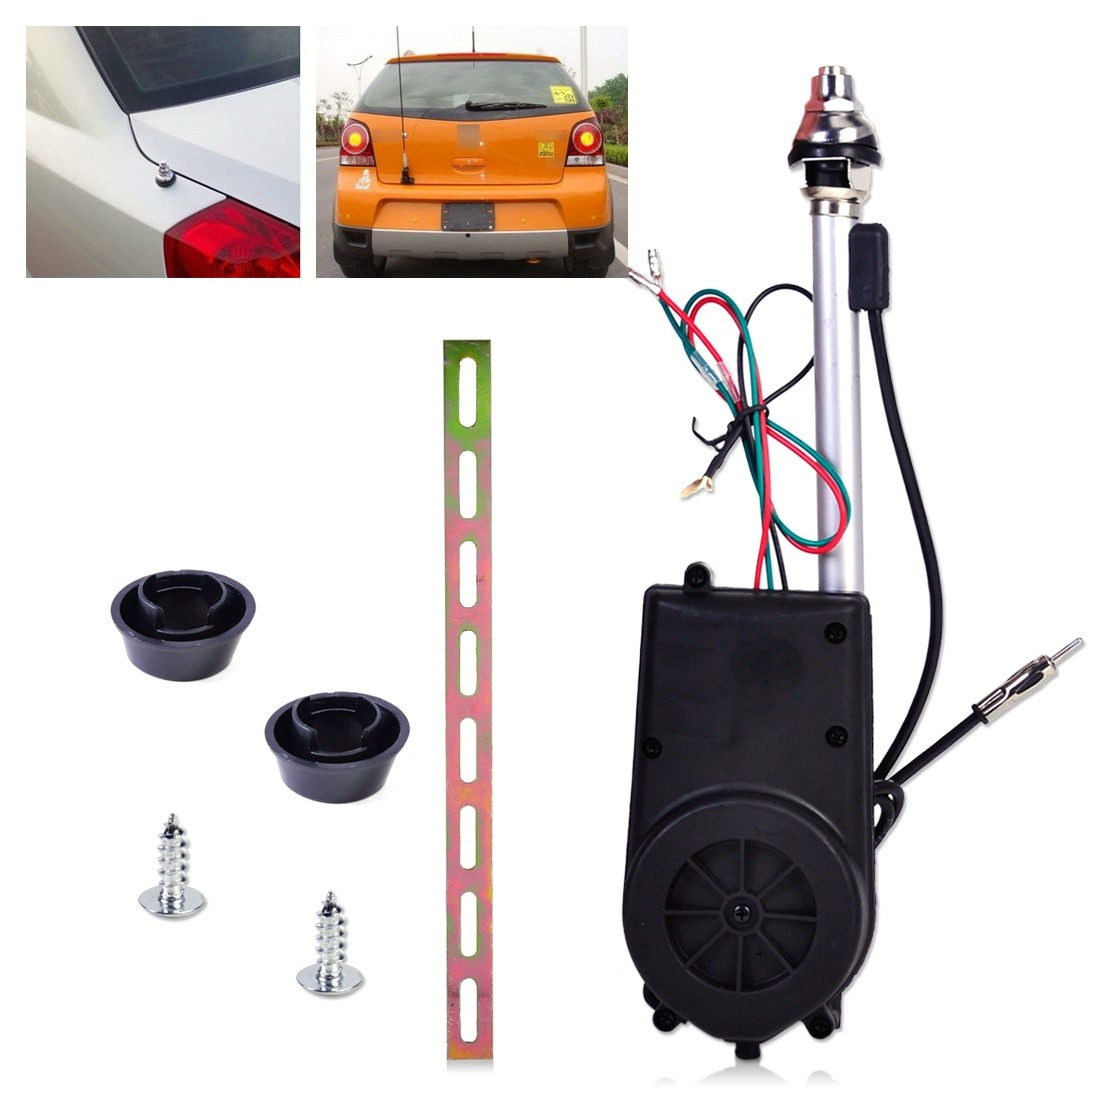 Wiring Diagram For Electric Car Aerial A 2002 Mazda Miata Power Antenna 1979 Gmc Light Duty Truck Series 10 35 Universal 12v Automatic Replacement Kit Fm Radio Mast Signal Booster Volkswagensc1stwiring